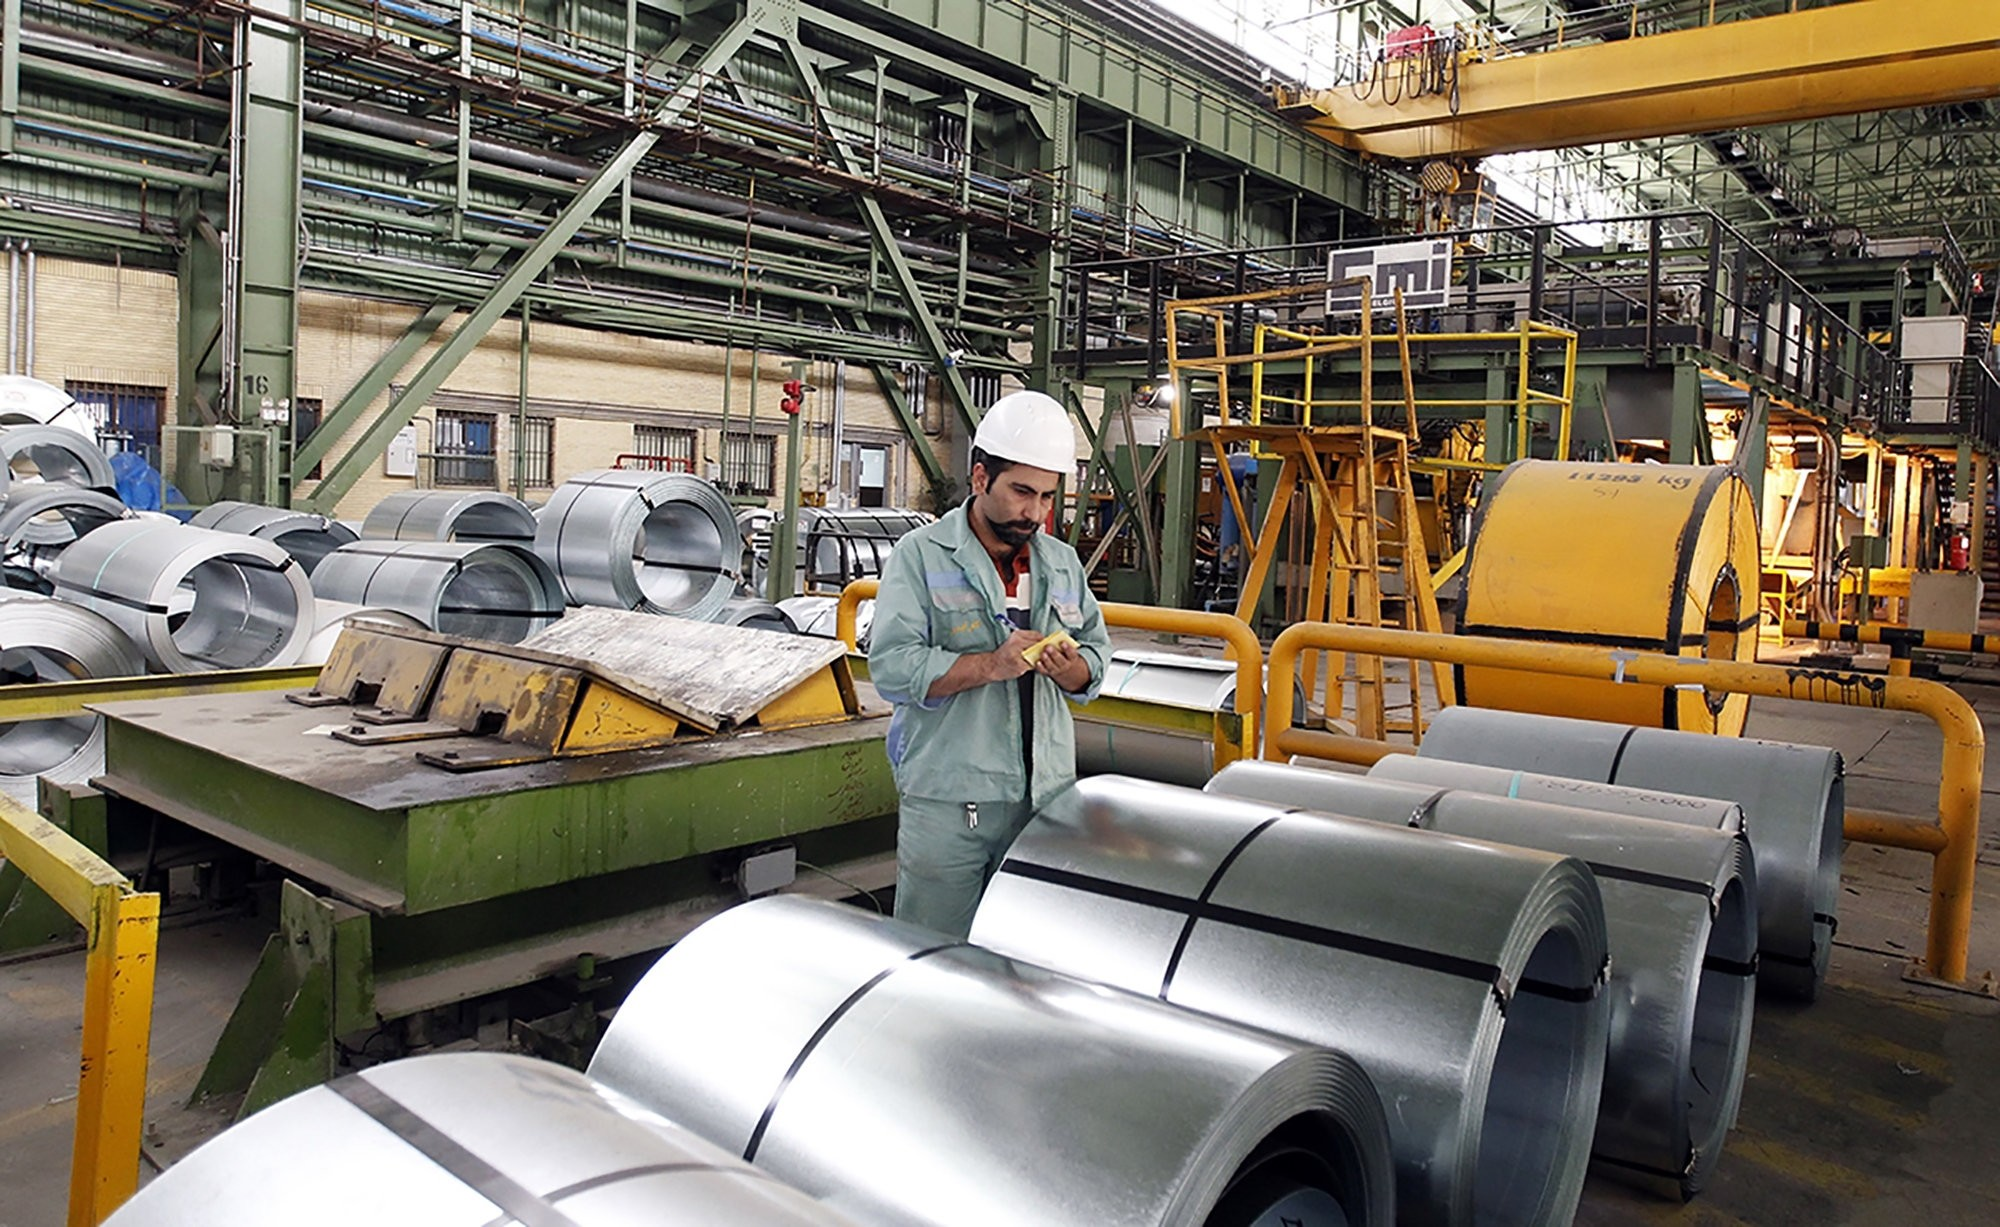 Steel exports on quantity basis were up 20.8 percent year-on-year in 2018, reaching 21.4 million tons.